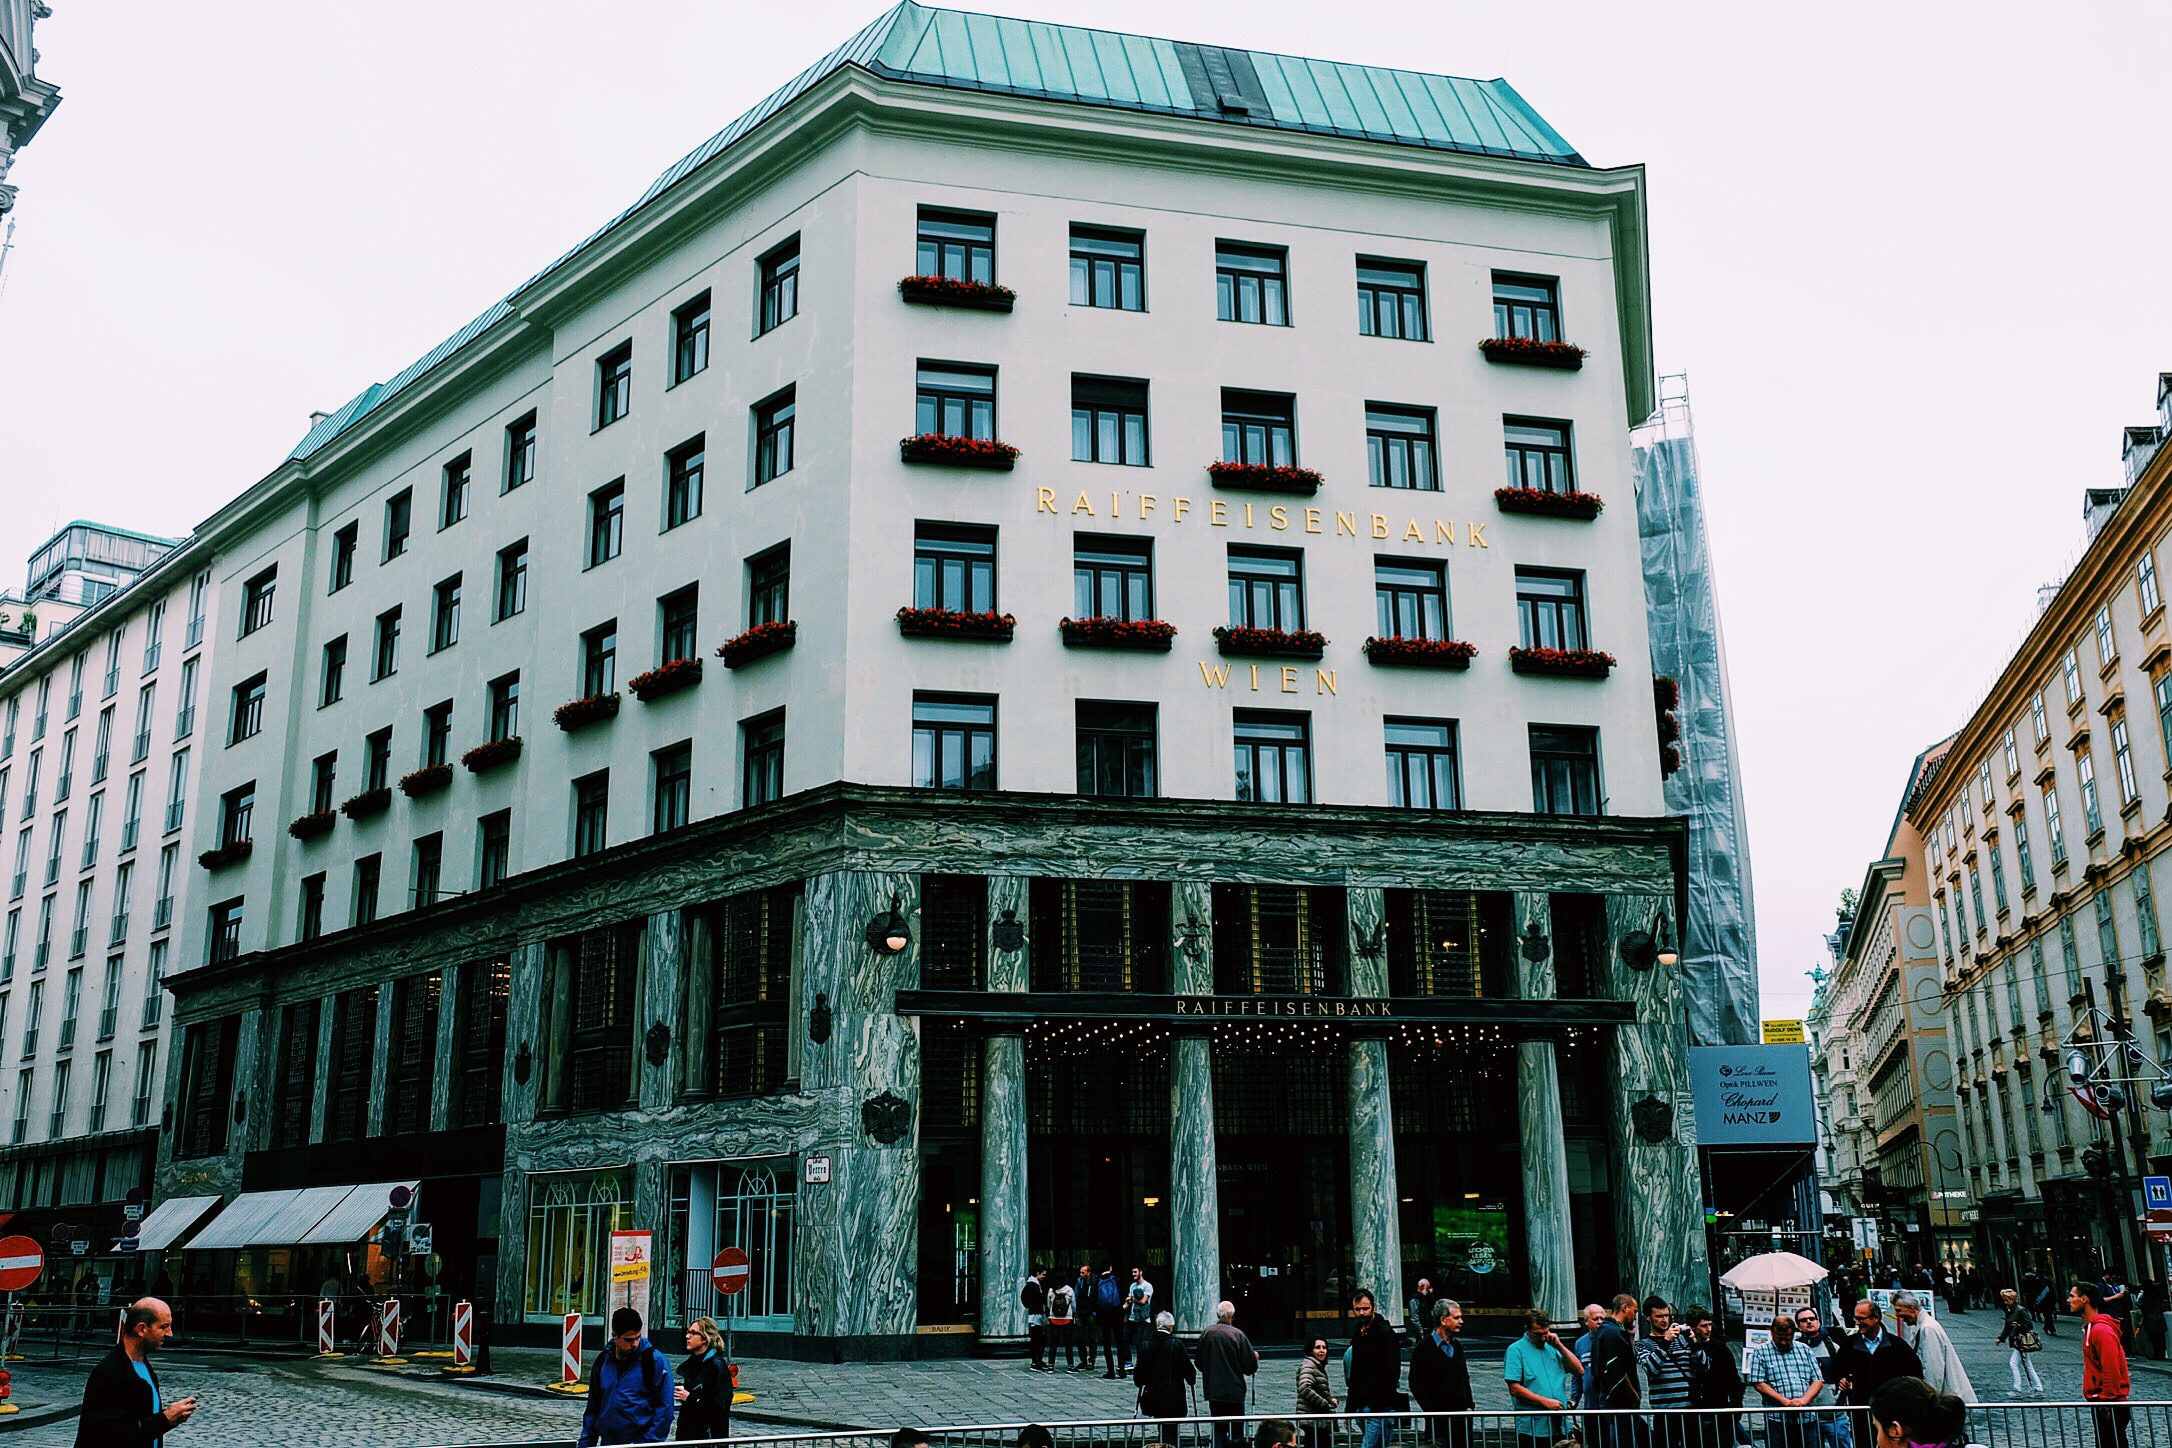 This building, built by Adolf Loos is apparently one of the the first examples of modern architecture in Europe